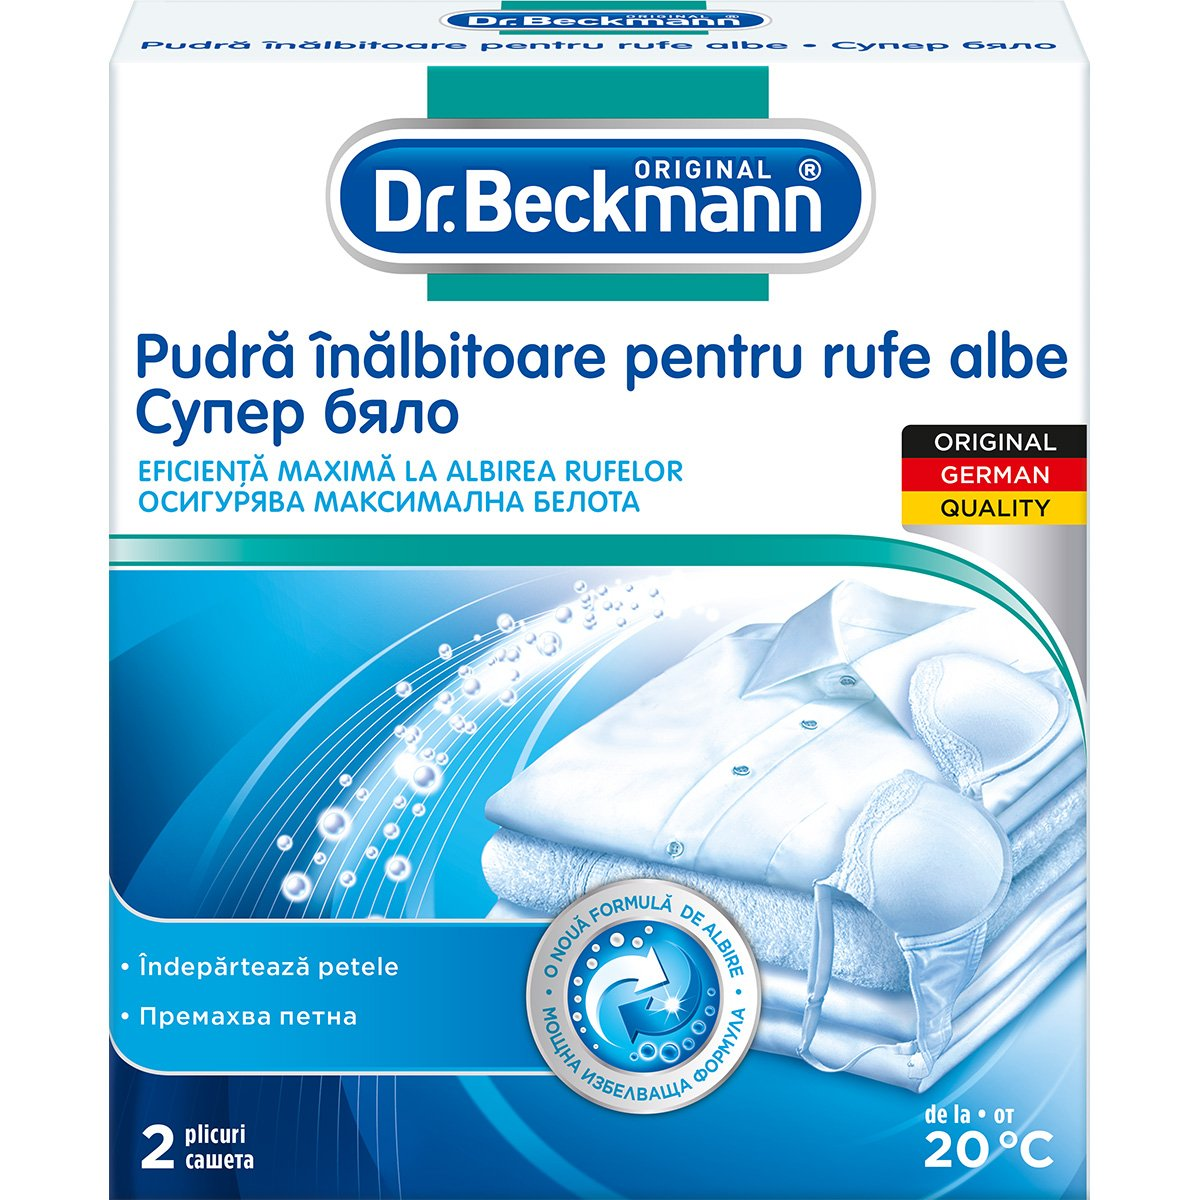 Pudra inalbitoare super white Dr. Beckmann, 2 x 40 g imagine 2021